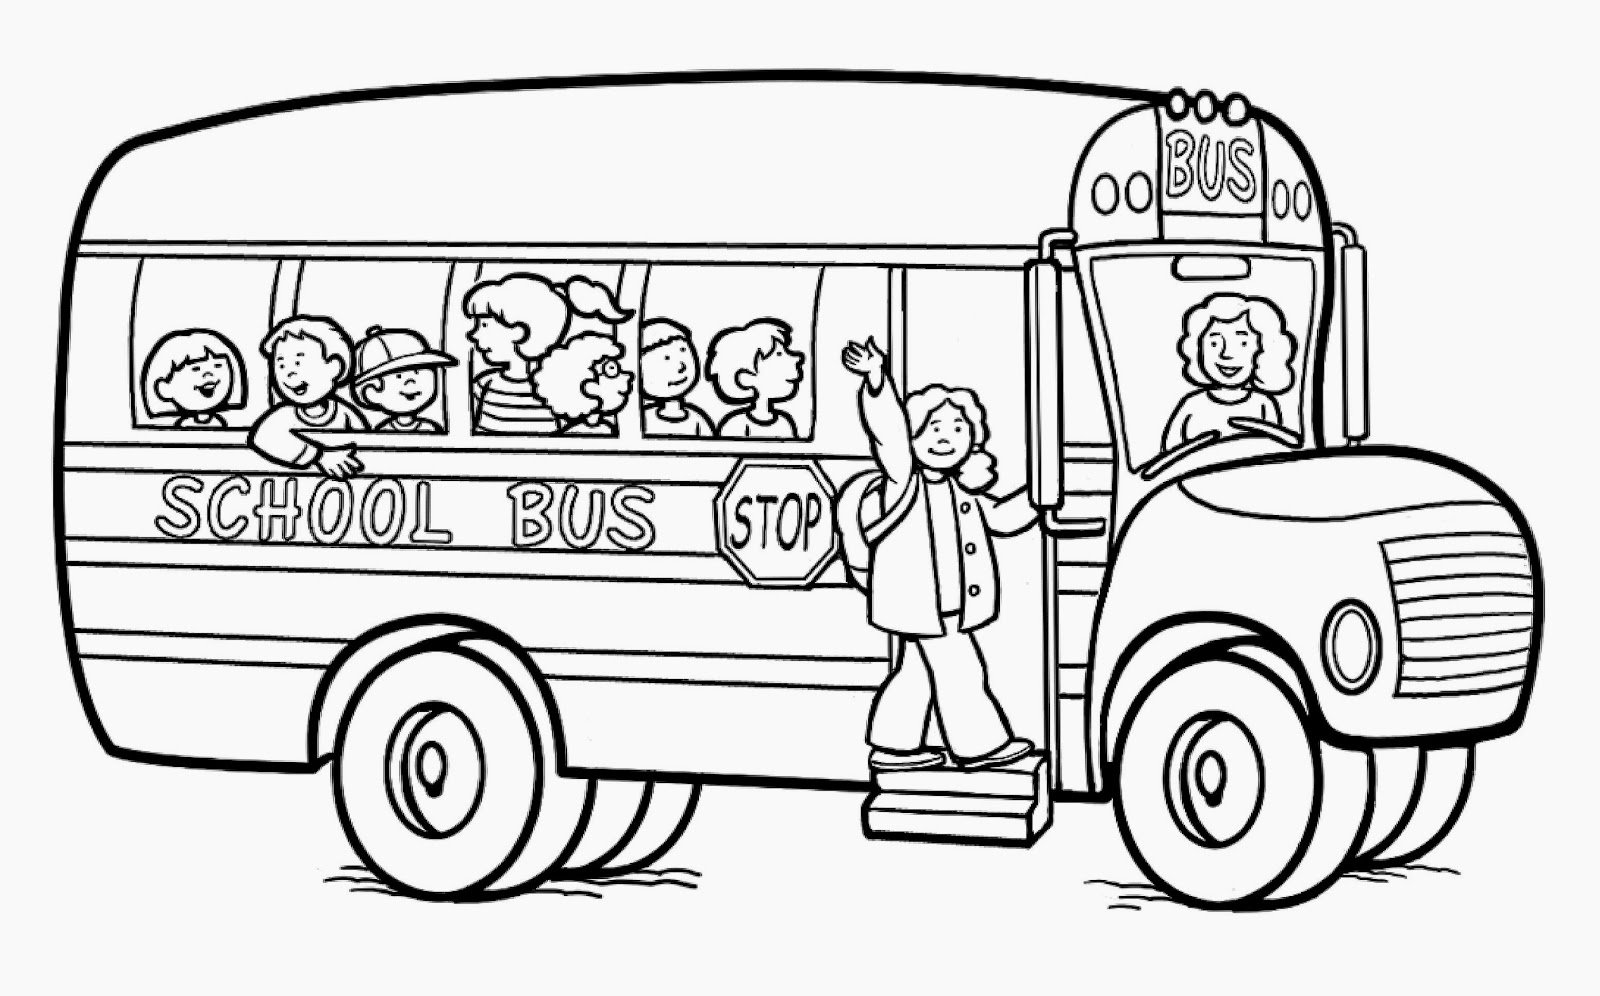 1600x996 Coloring Pages Delightful School Bus Coloring Pages Page Amazing